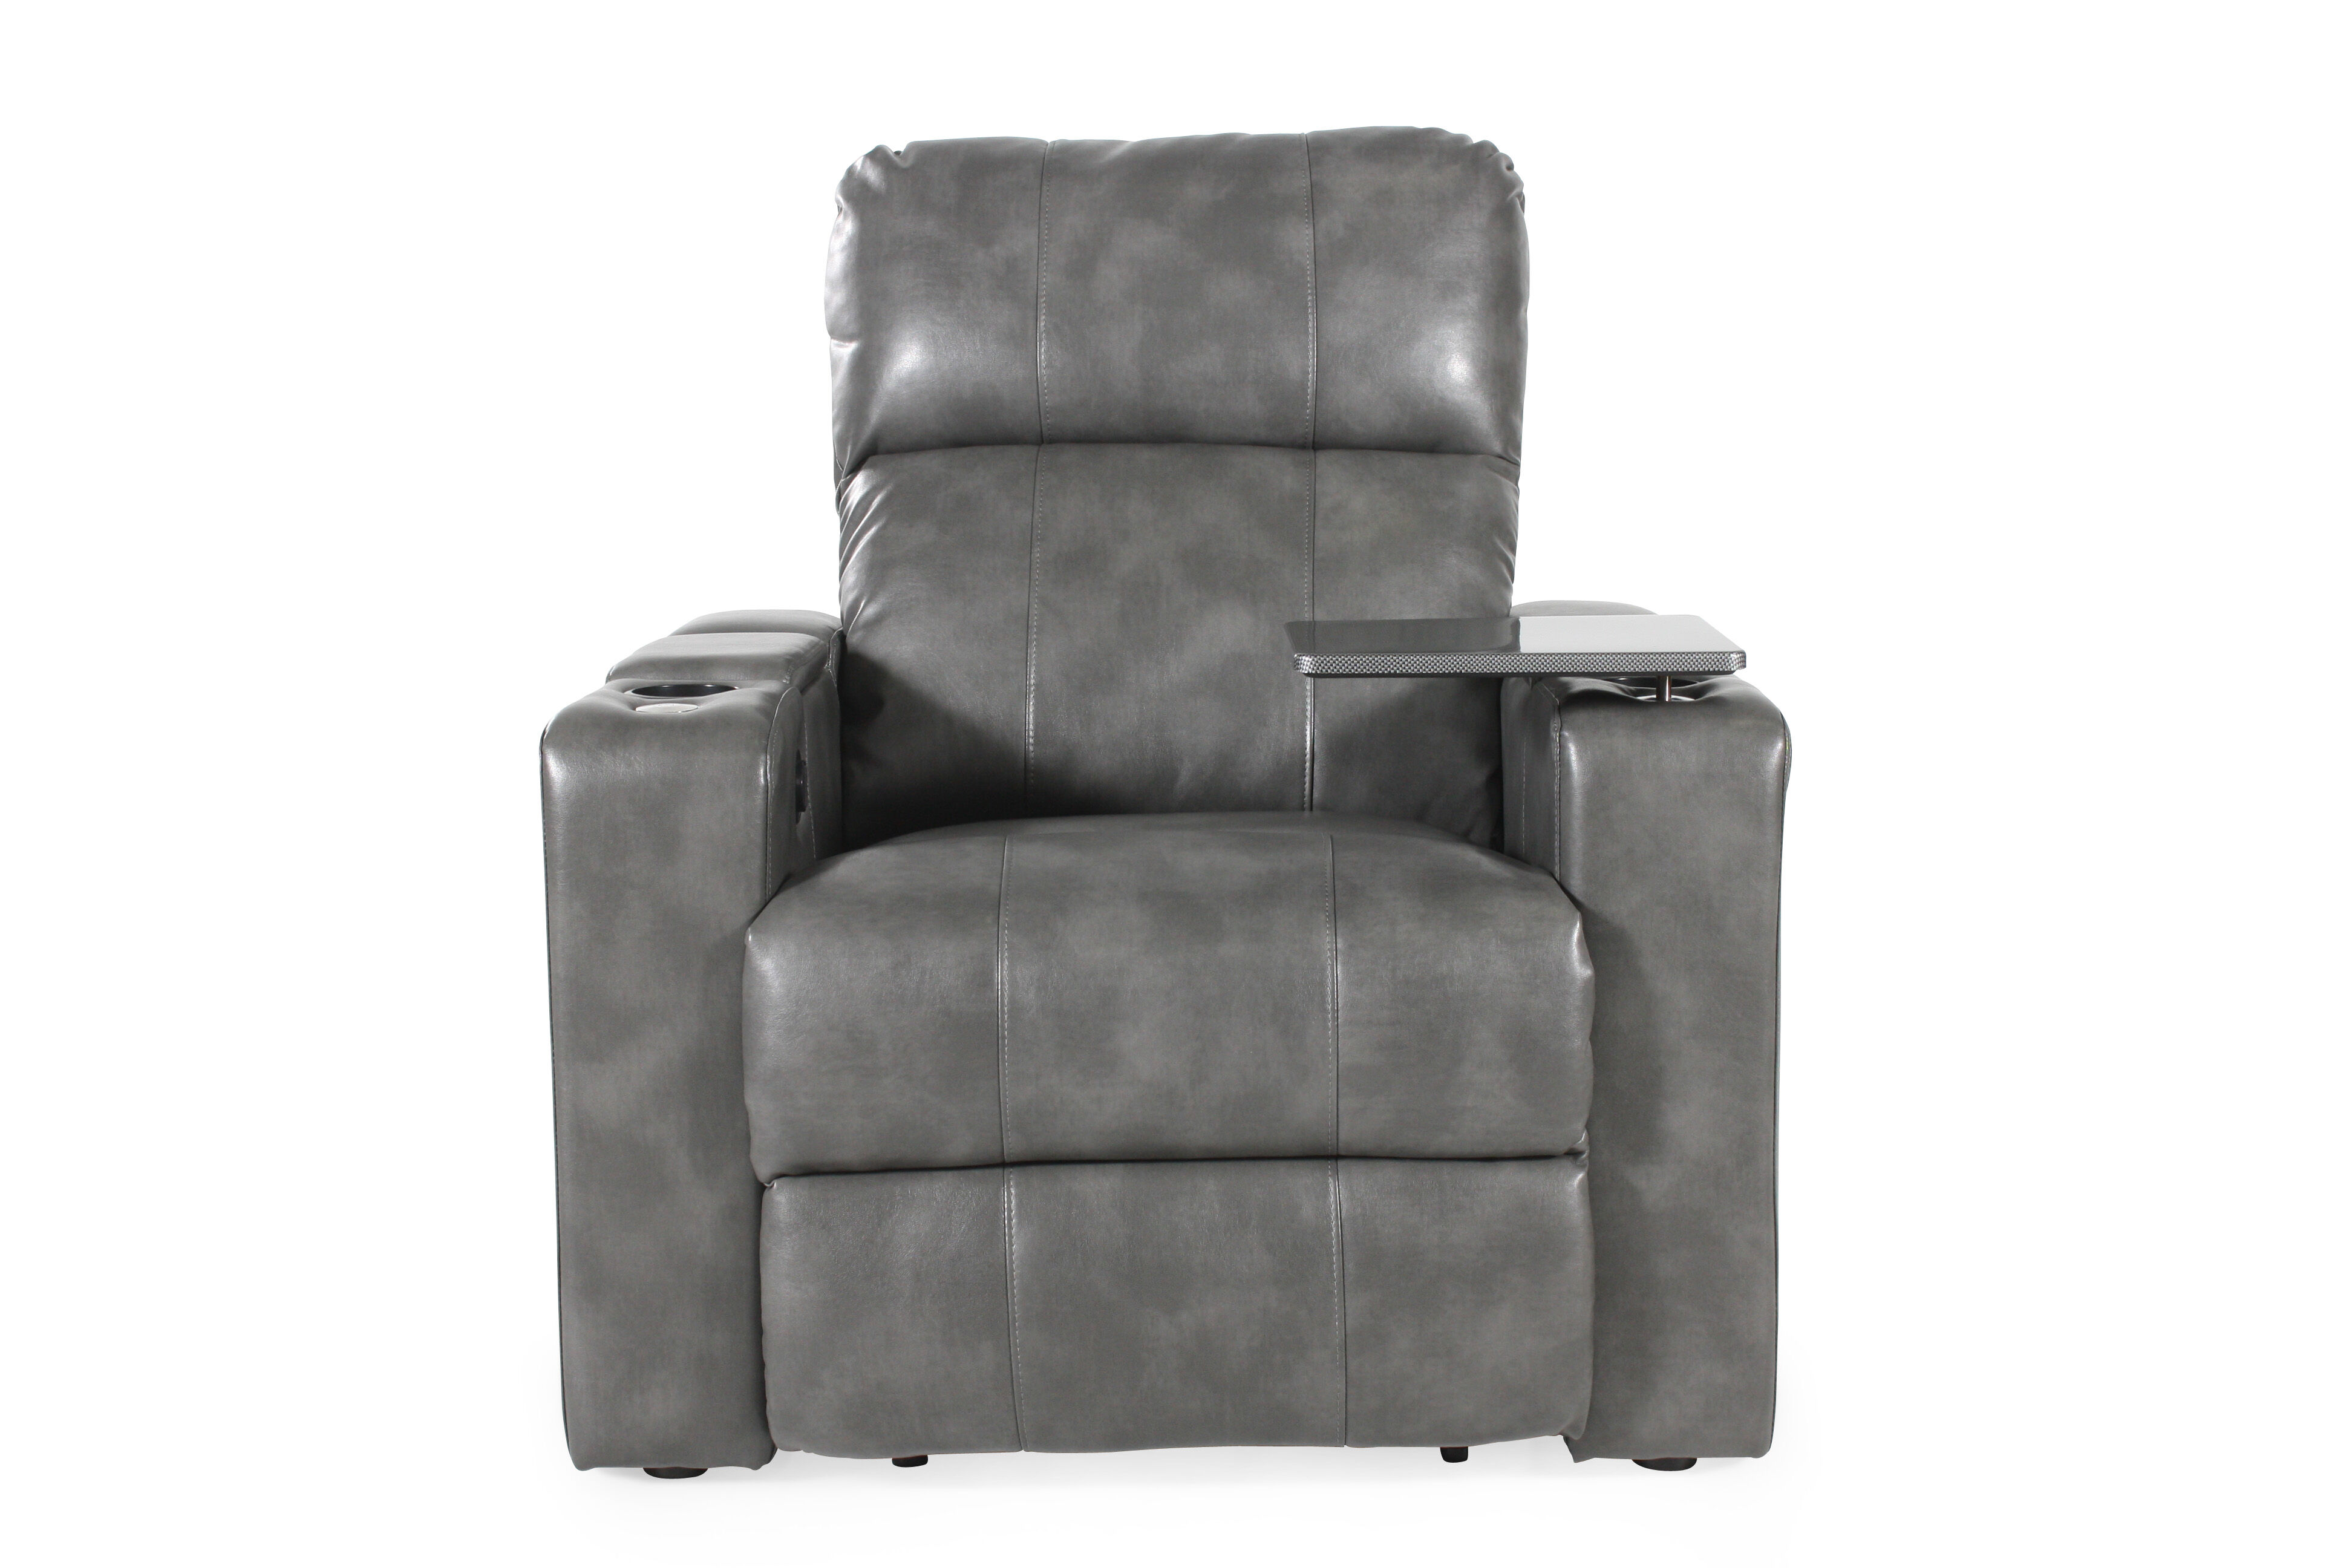 theater recliner chairs danish for sale traditional home power in grey mathis